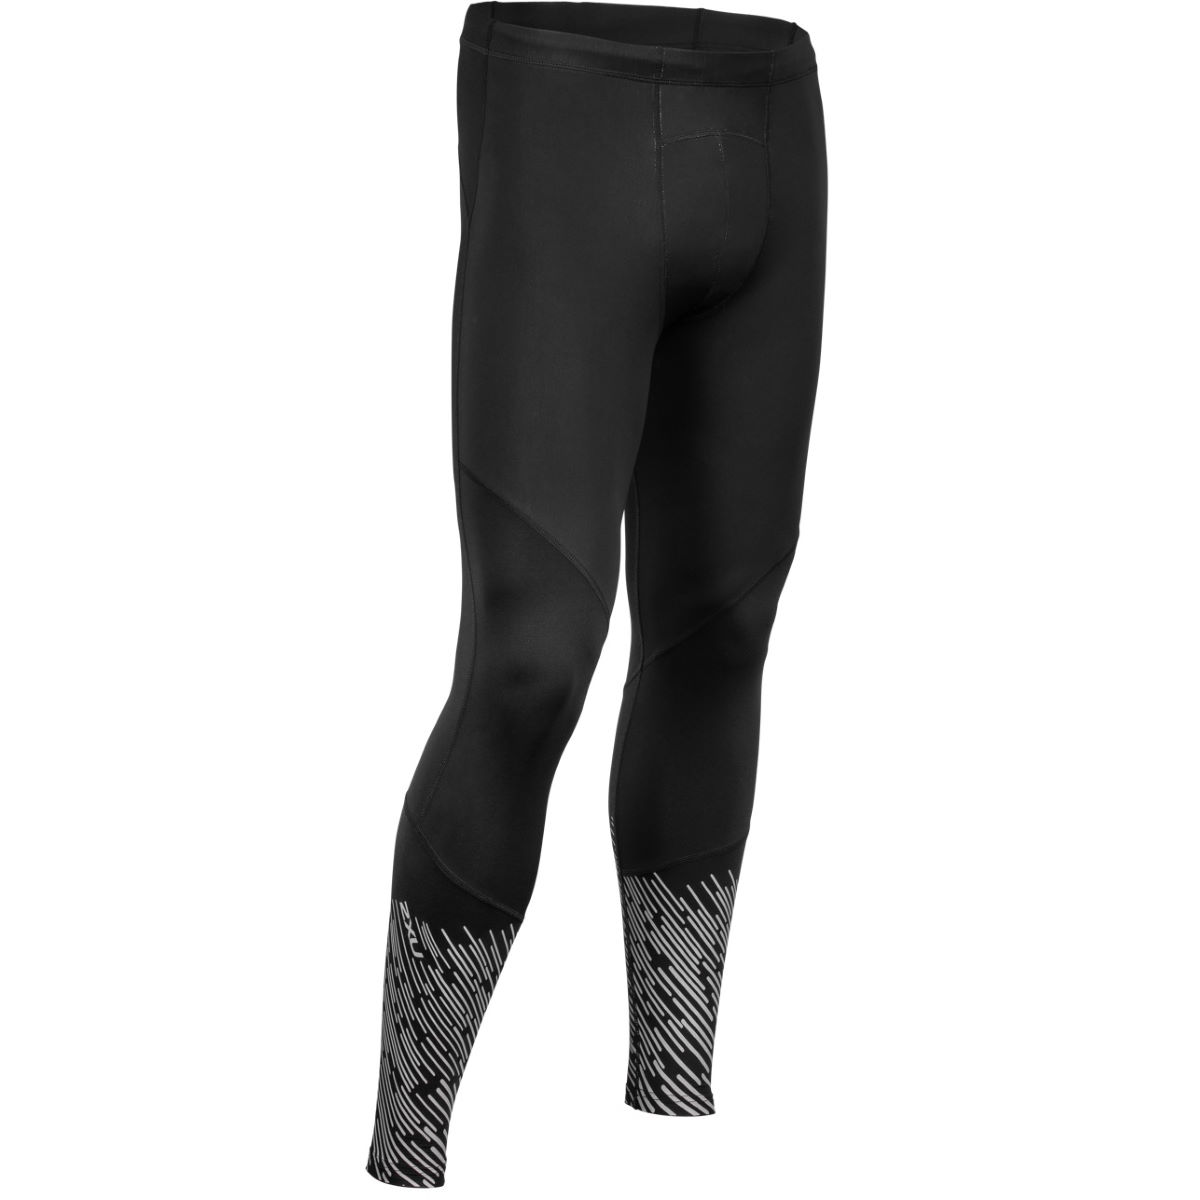 2XU Wind Defence Compression Tight   Compression Tops